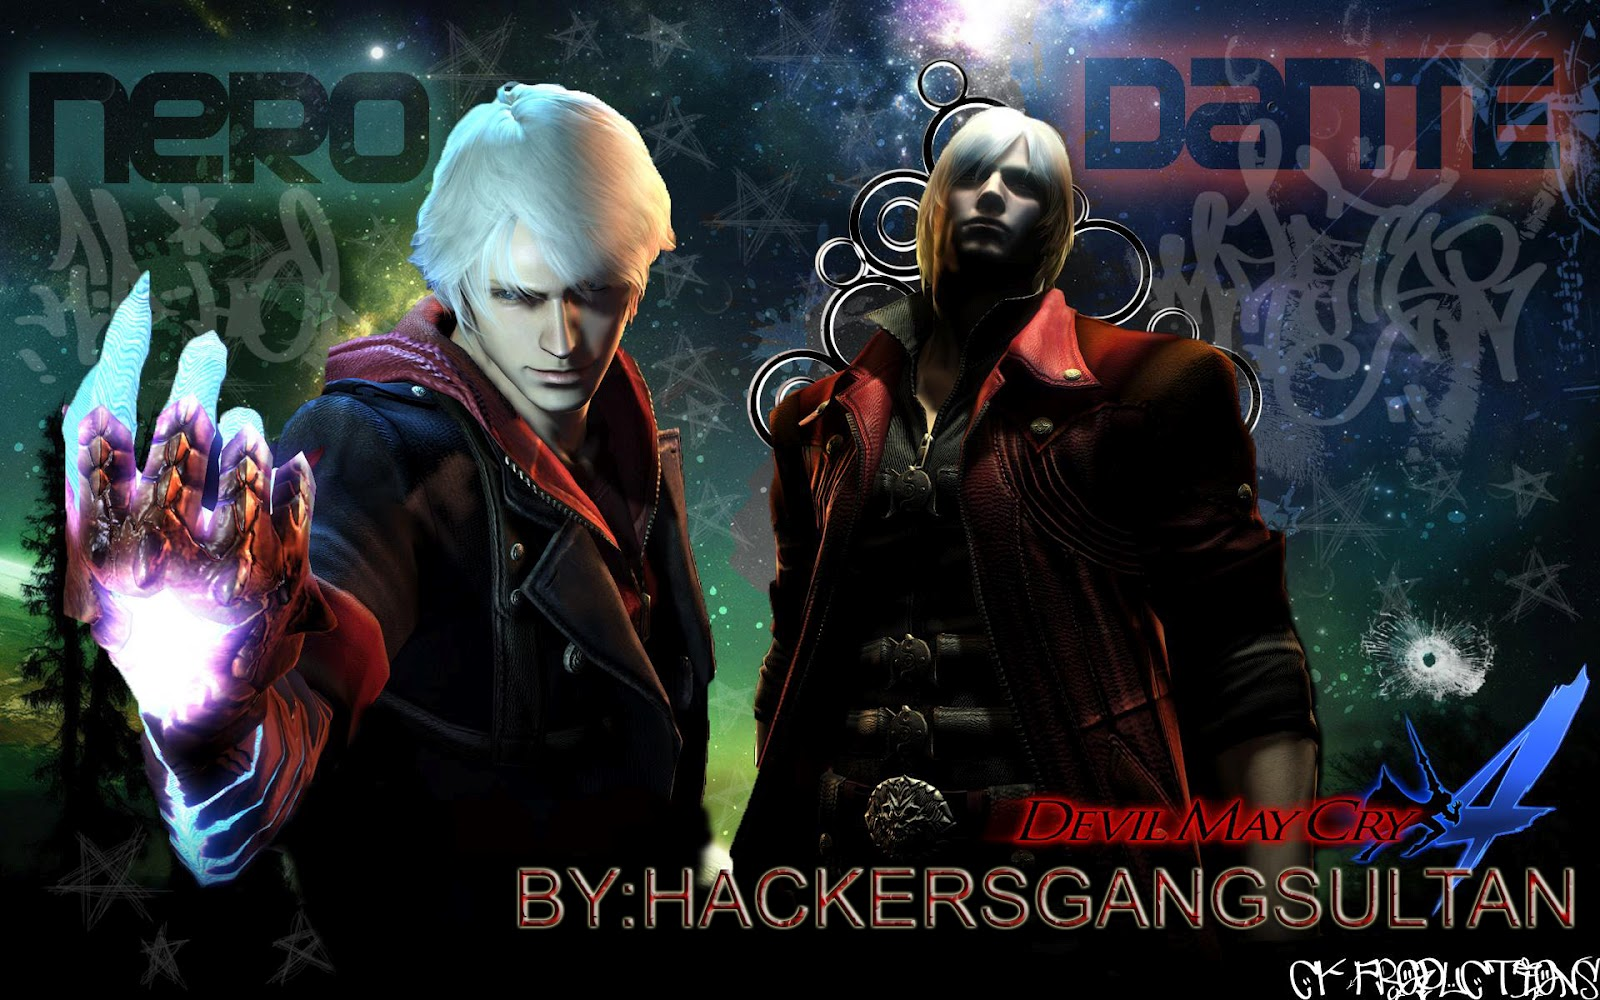 http://1.bp.blogspot.com/-xcRvcpLC8ts/T9HIN8yDOEI/AAAAAAAAAT0/kQwhzxdnrrg/s1600/Devil_May_Cry_4_Wallpaper_by_craik.jpg